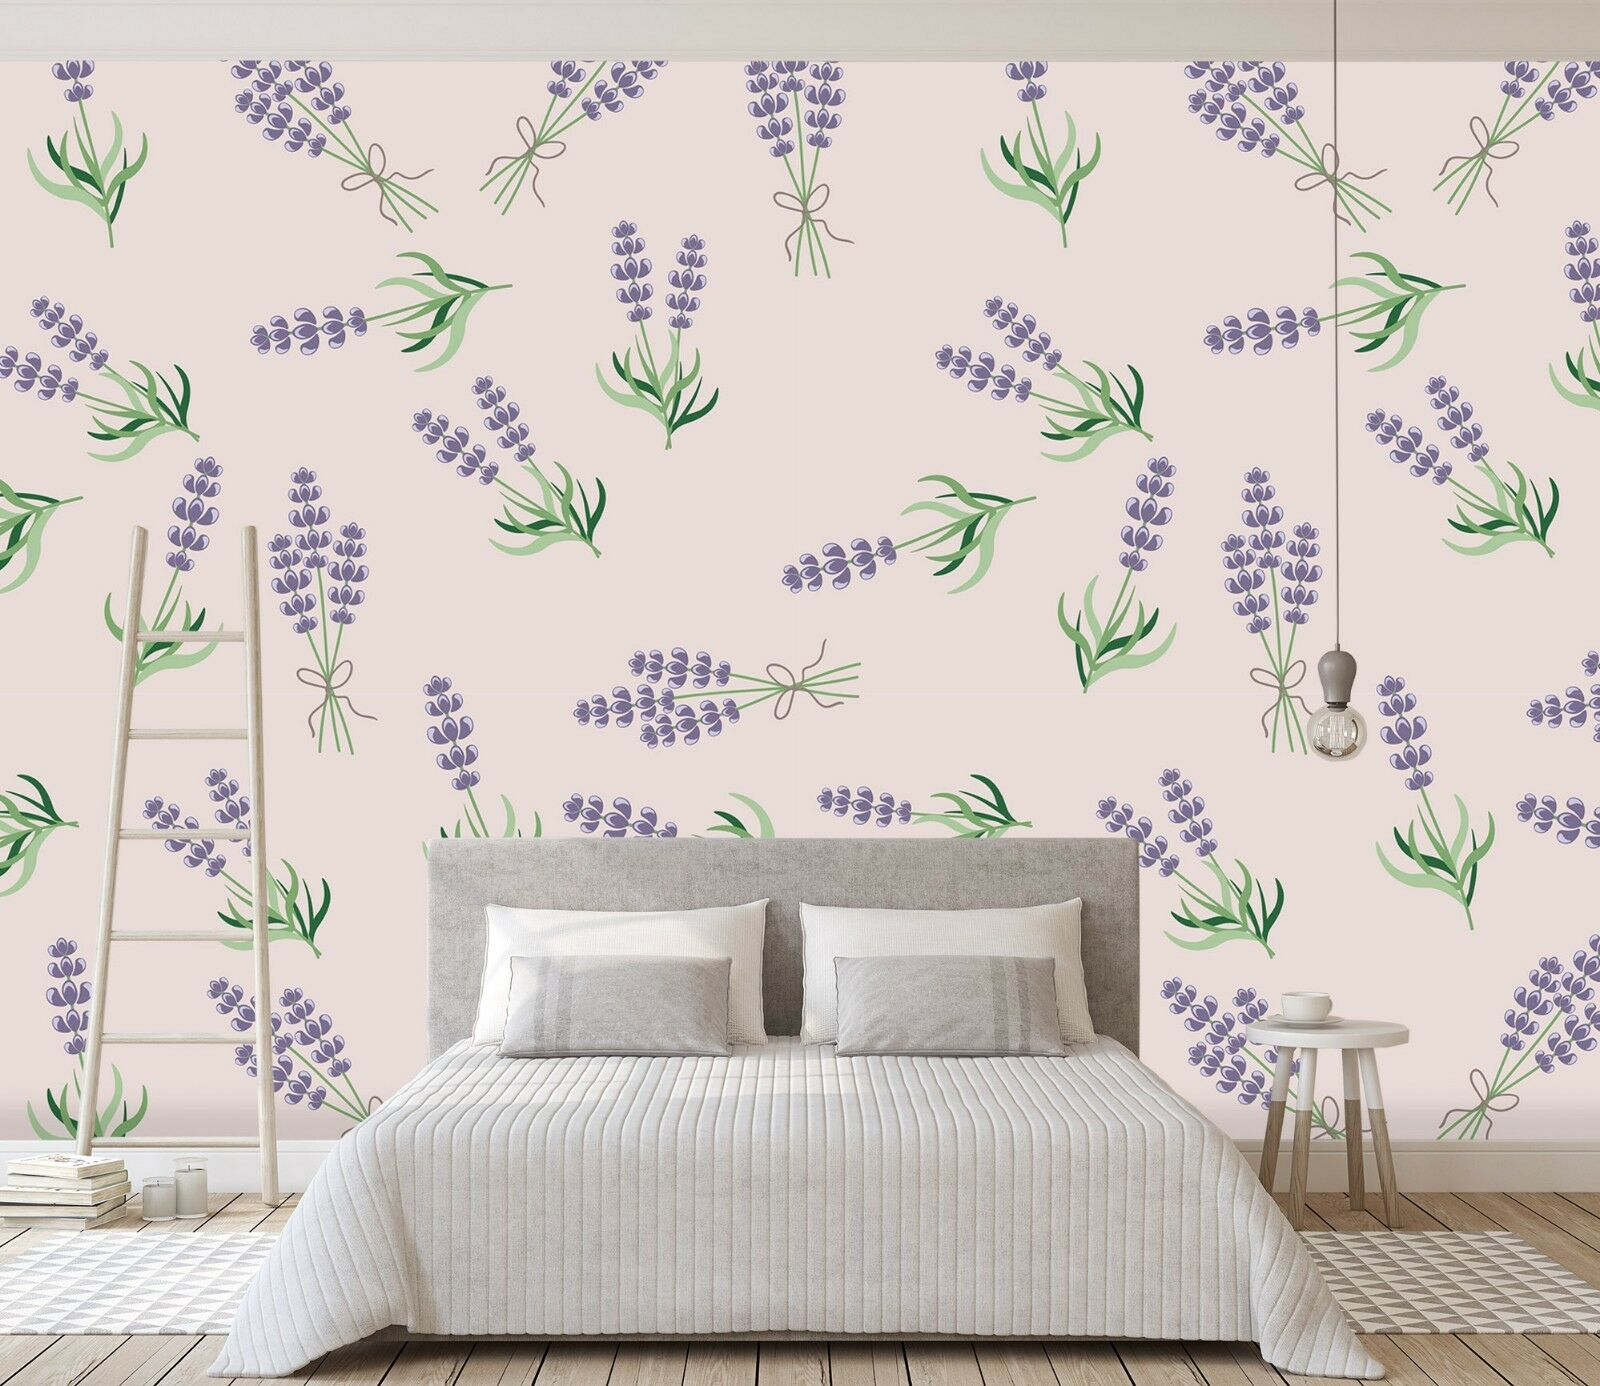 3D Lavender Graffiti 291 Wallpaper Mural Wallpaper UK Jenny